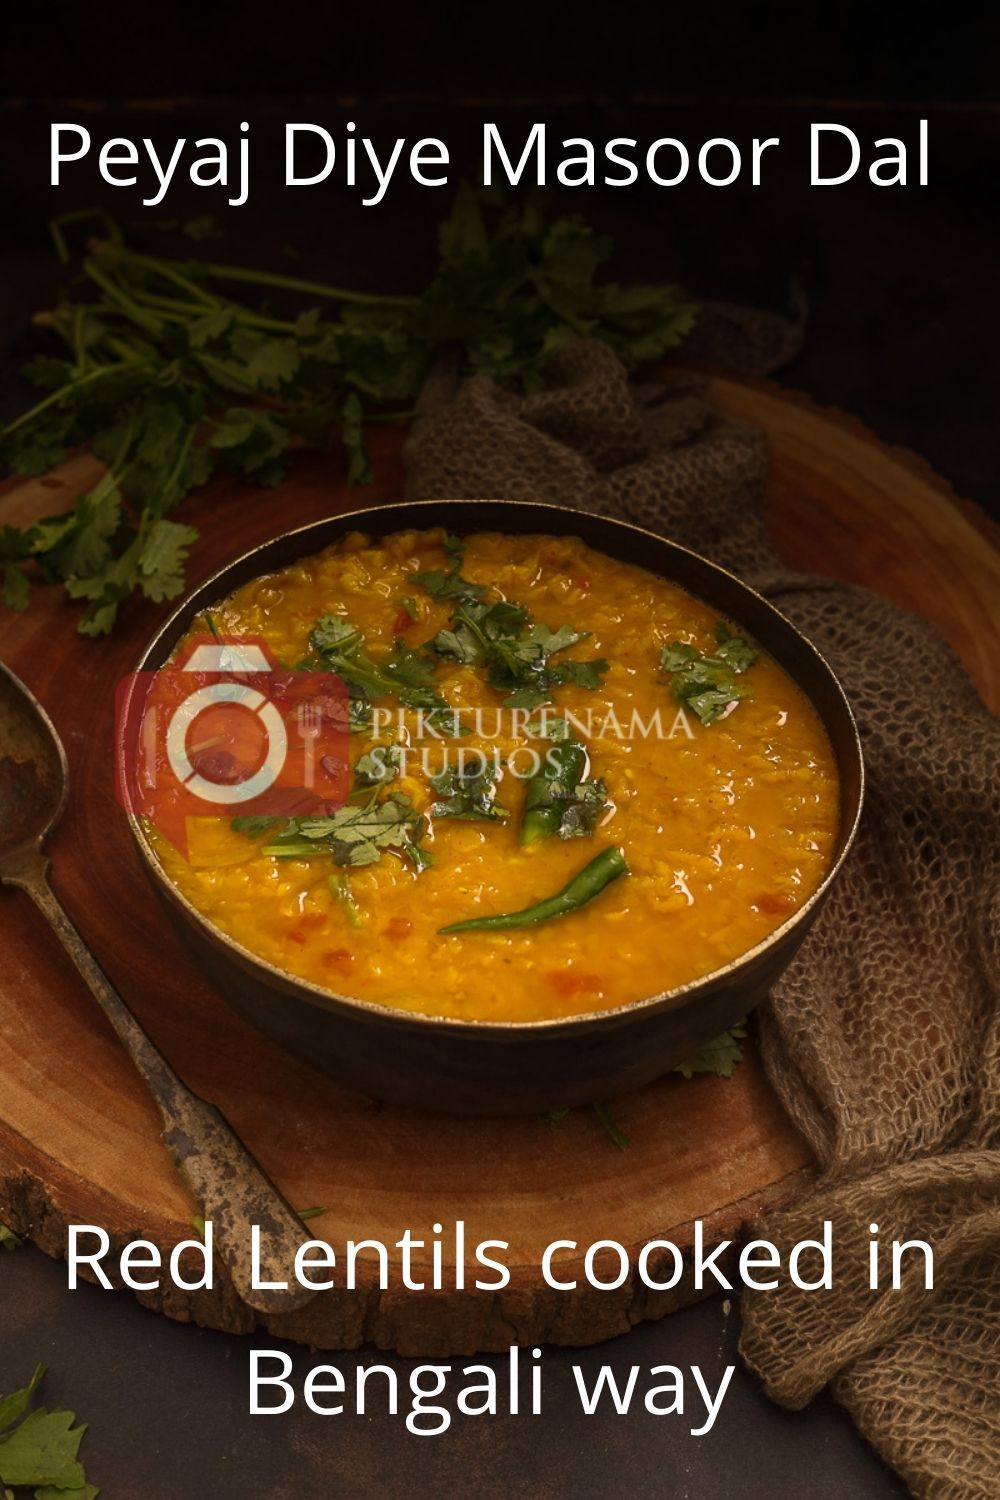 Red Lentils cooked in bengali way - Masoor Dal for Pinterest